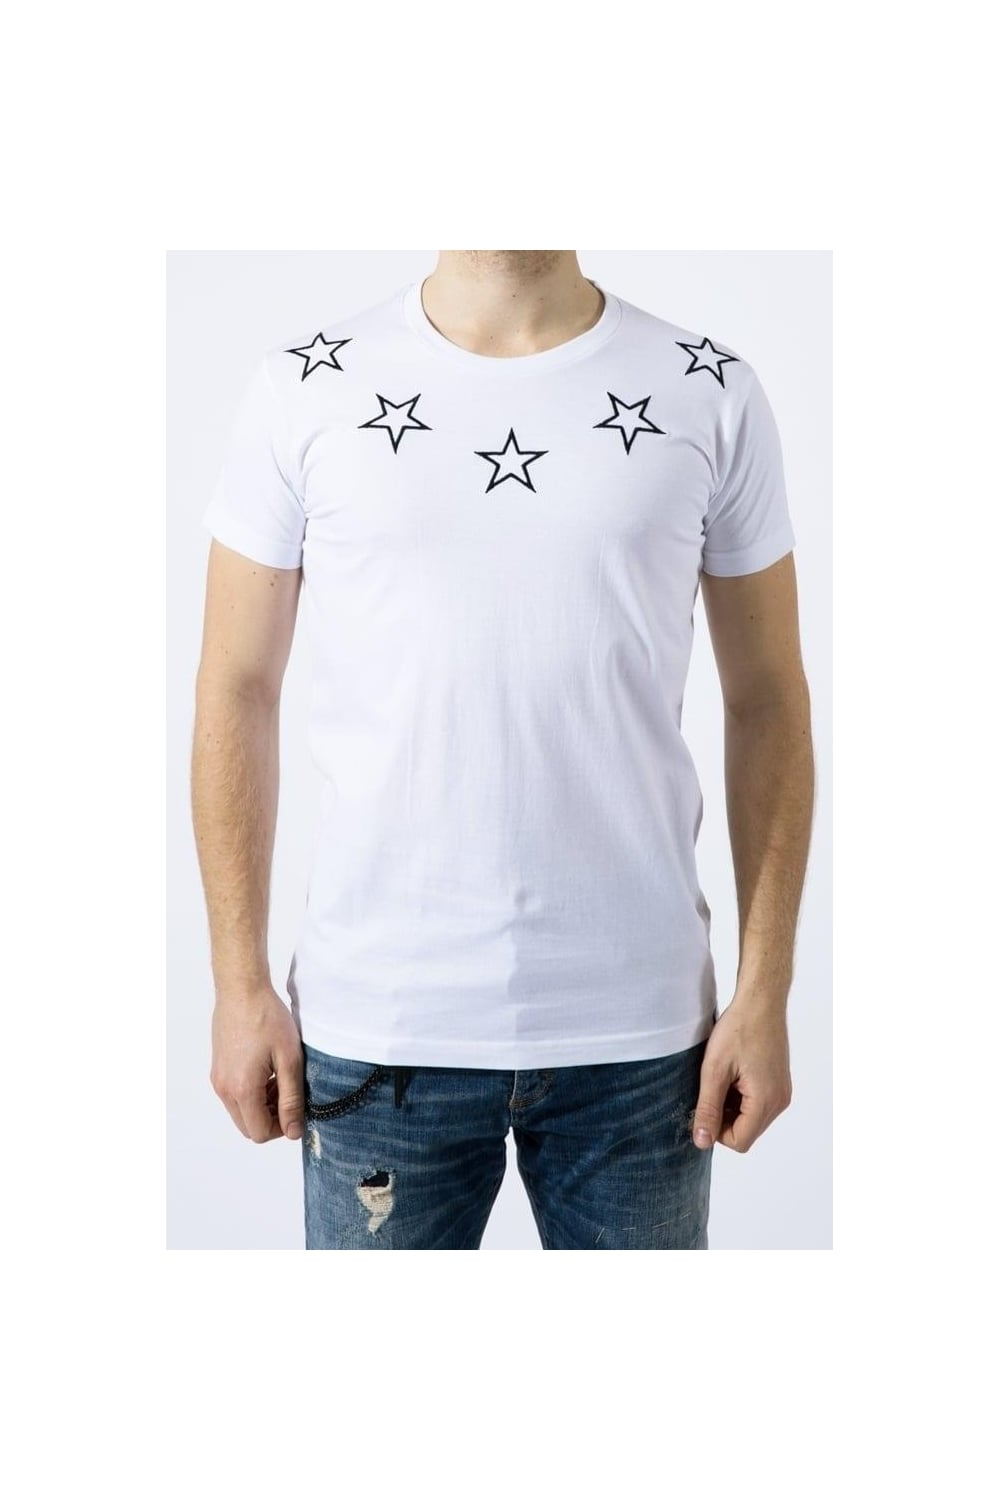 abe star line t shirt white intro clothing